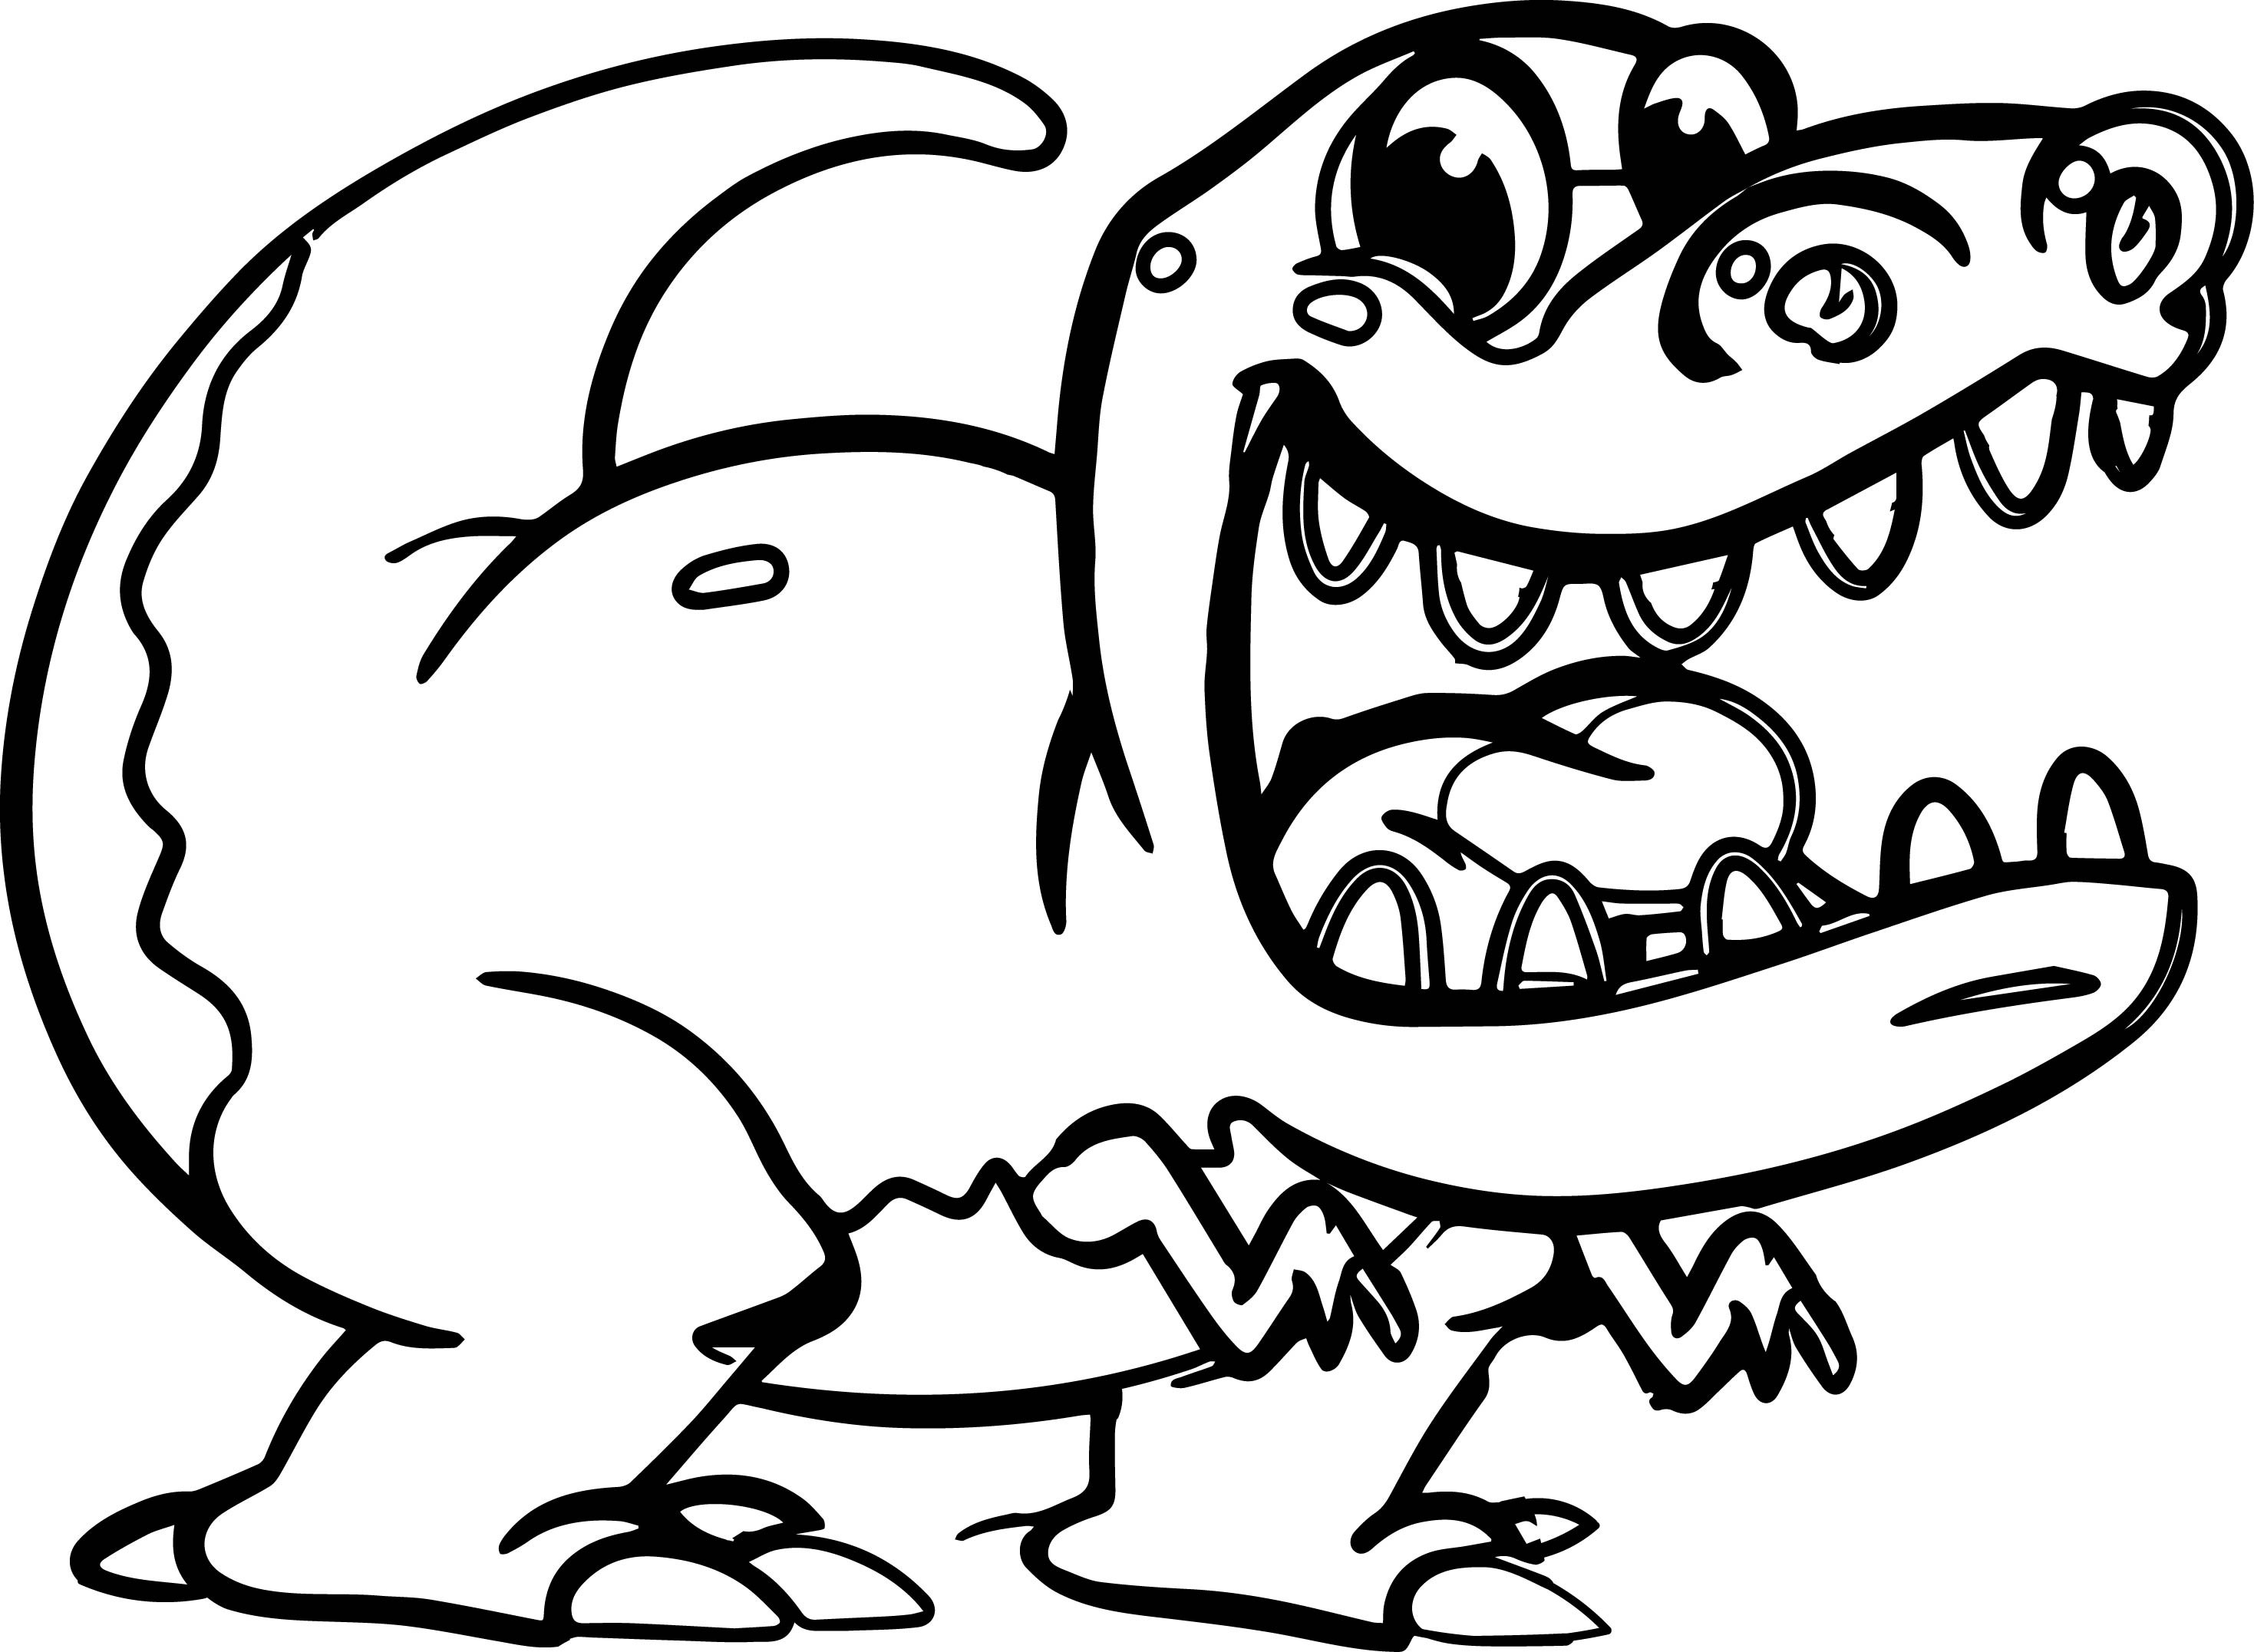 2937x2153 T Rex Dinosaur Coloring Pages For Kids New Outstanding